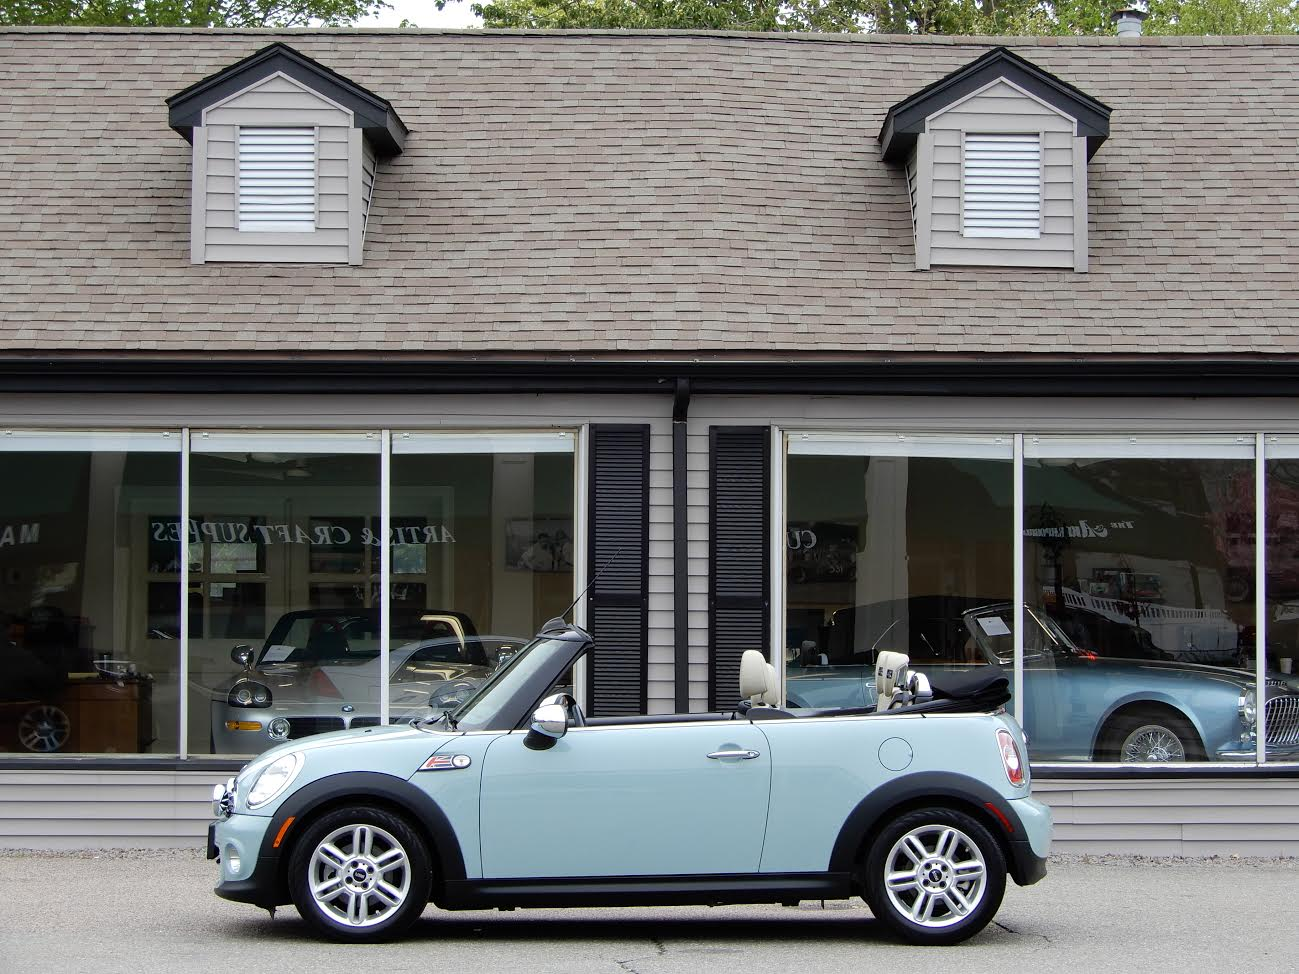 2017 Mini Cooper Convertible S N Wmwzn3c59et861259 Ice Blue With Polar Beige Gravity Leather 1 6 Litre 16 Vale 4 Cylinder Engine Automatic Transmission